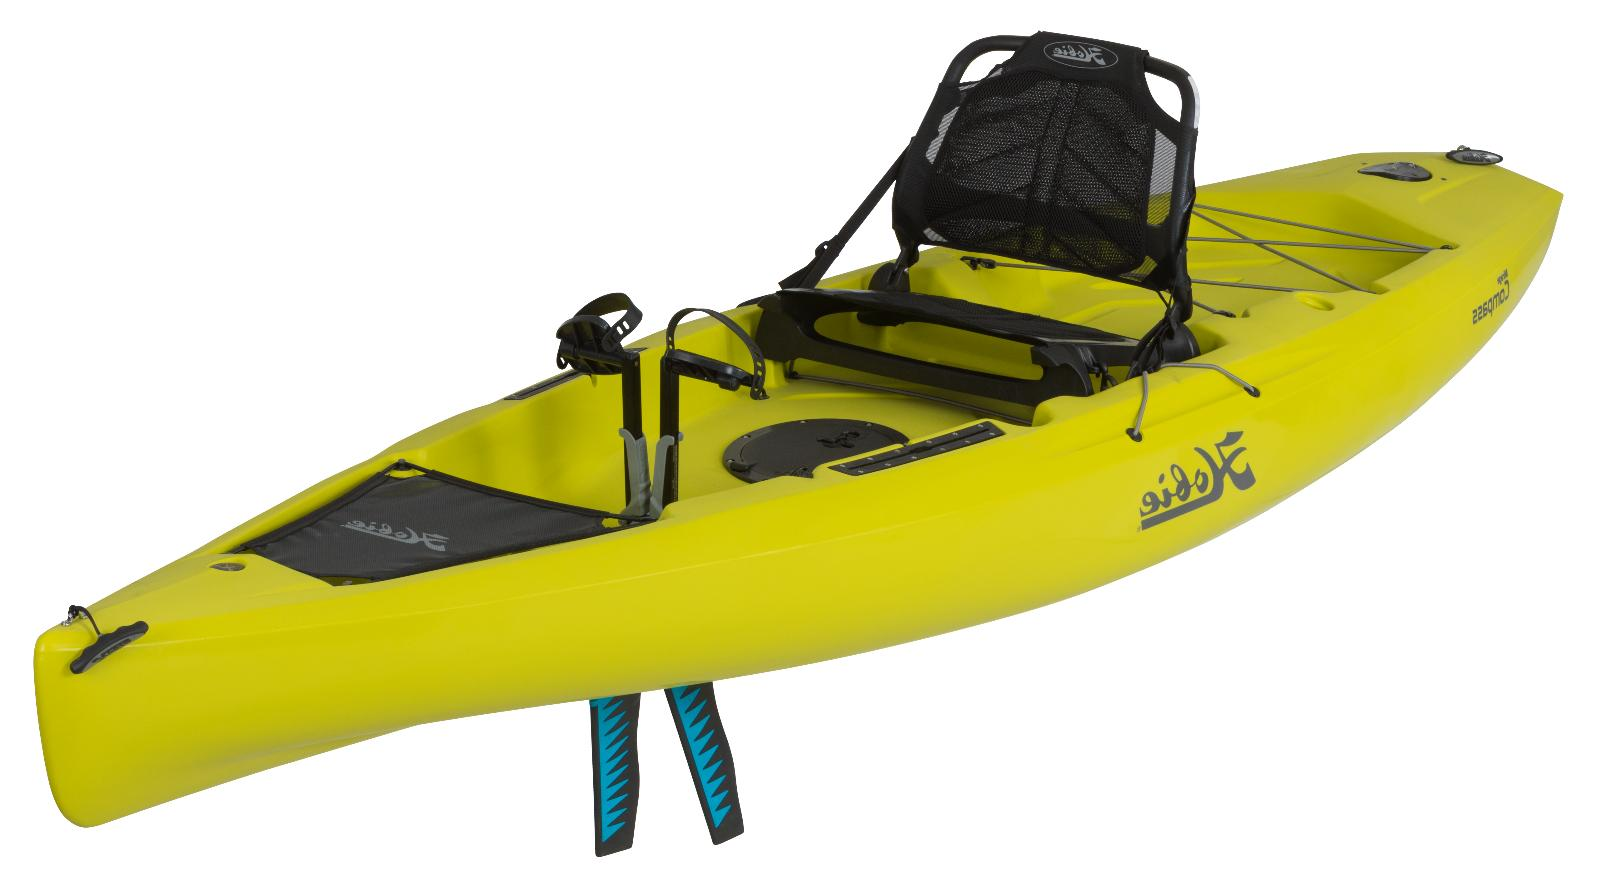 2018 Hobie Mirage Compass Pedal Fishing Kayak - Seagrass